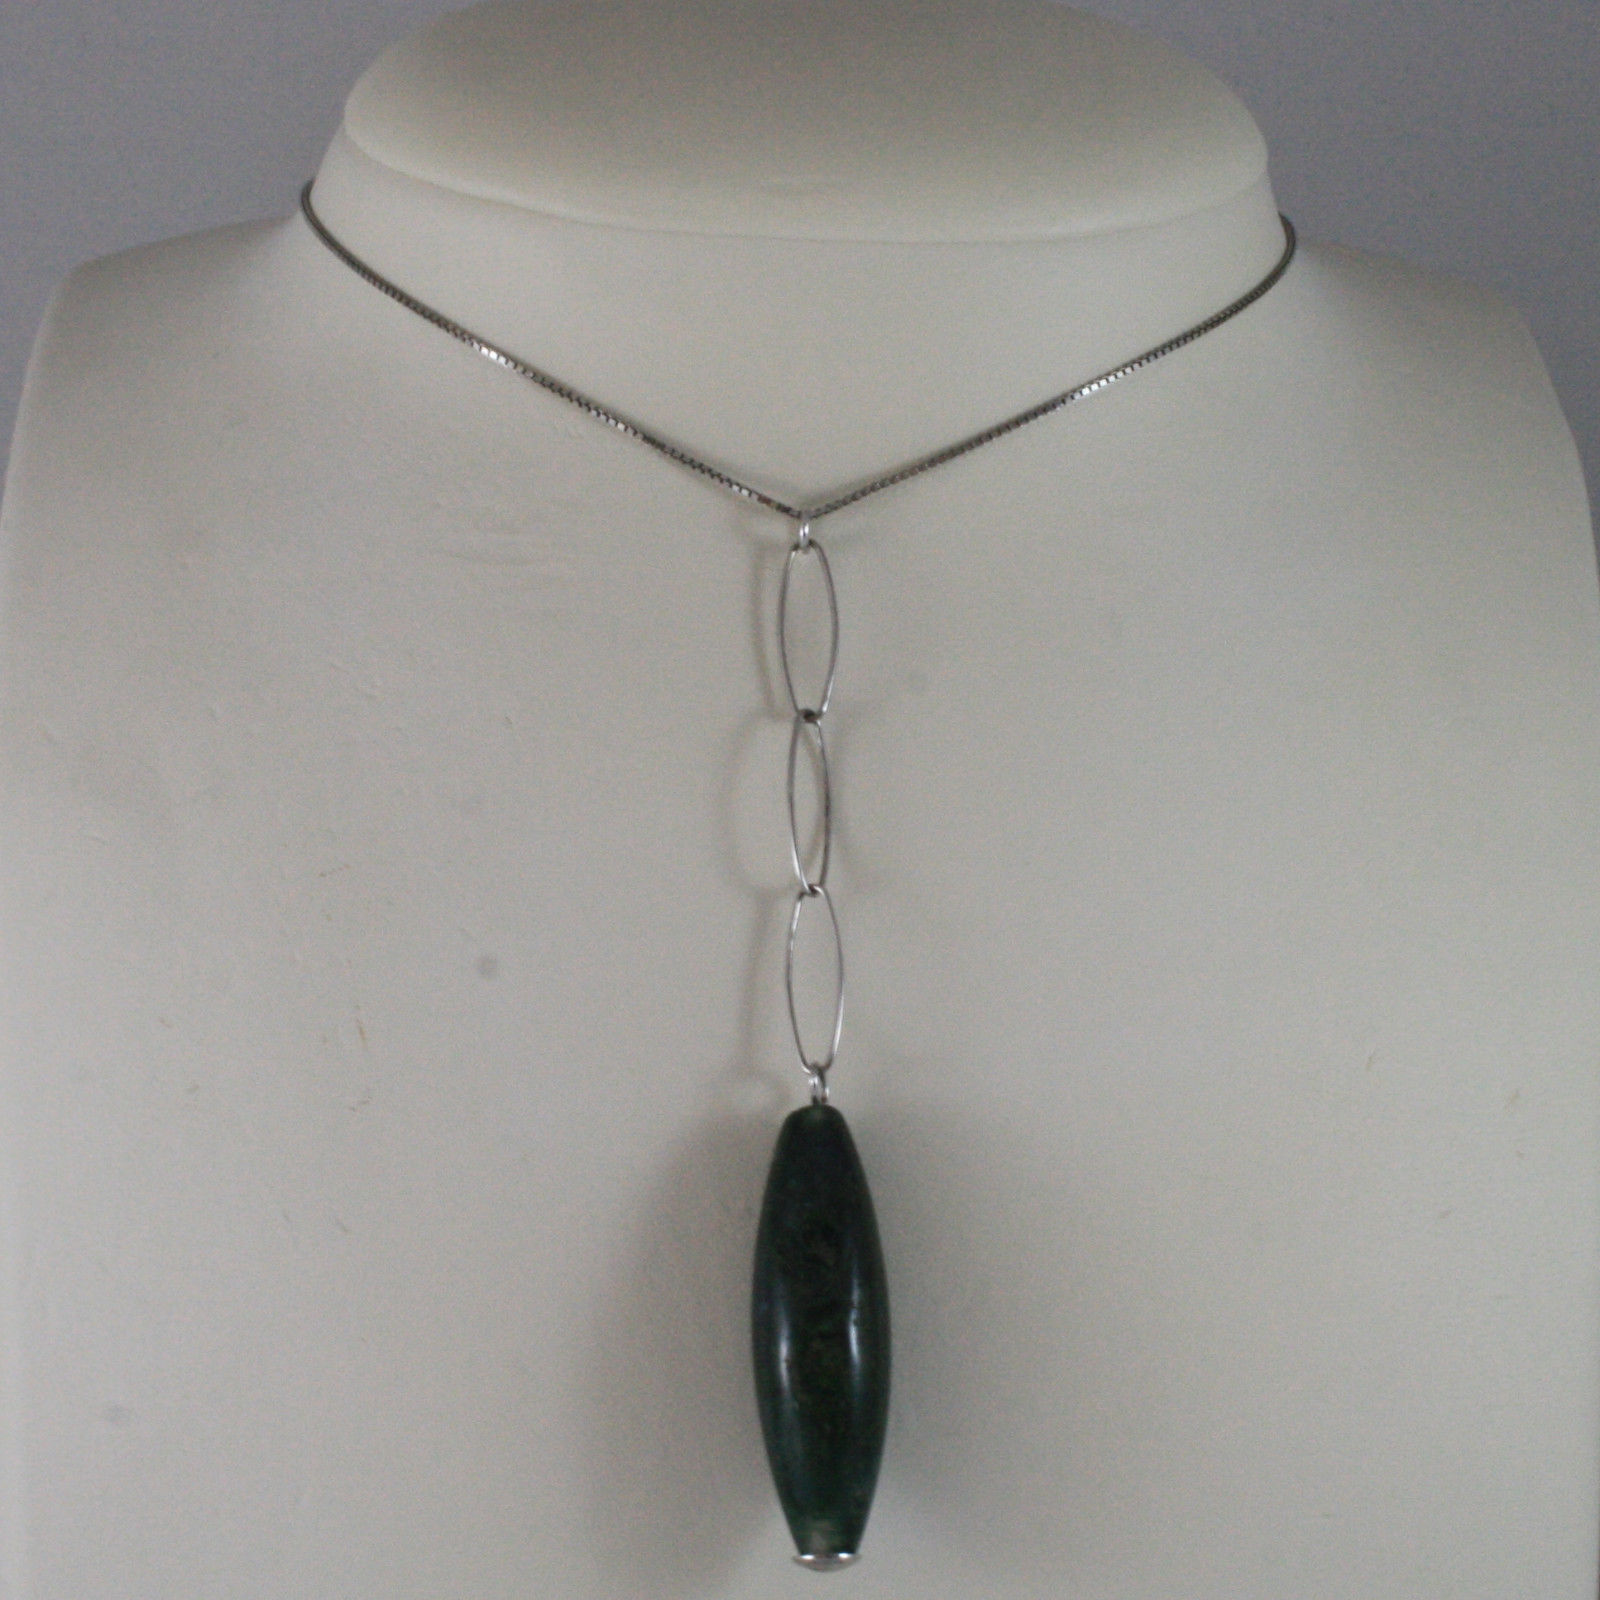 .925 SILVER RHODIUM NECKLACE WITH GREEN JASPER AND VENETIAN AND OVAL MESH